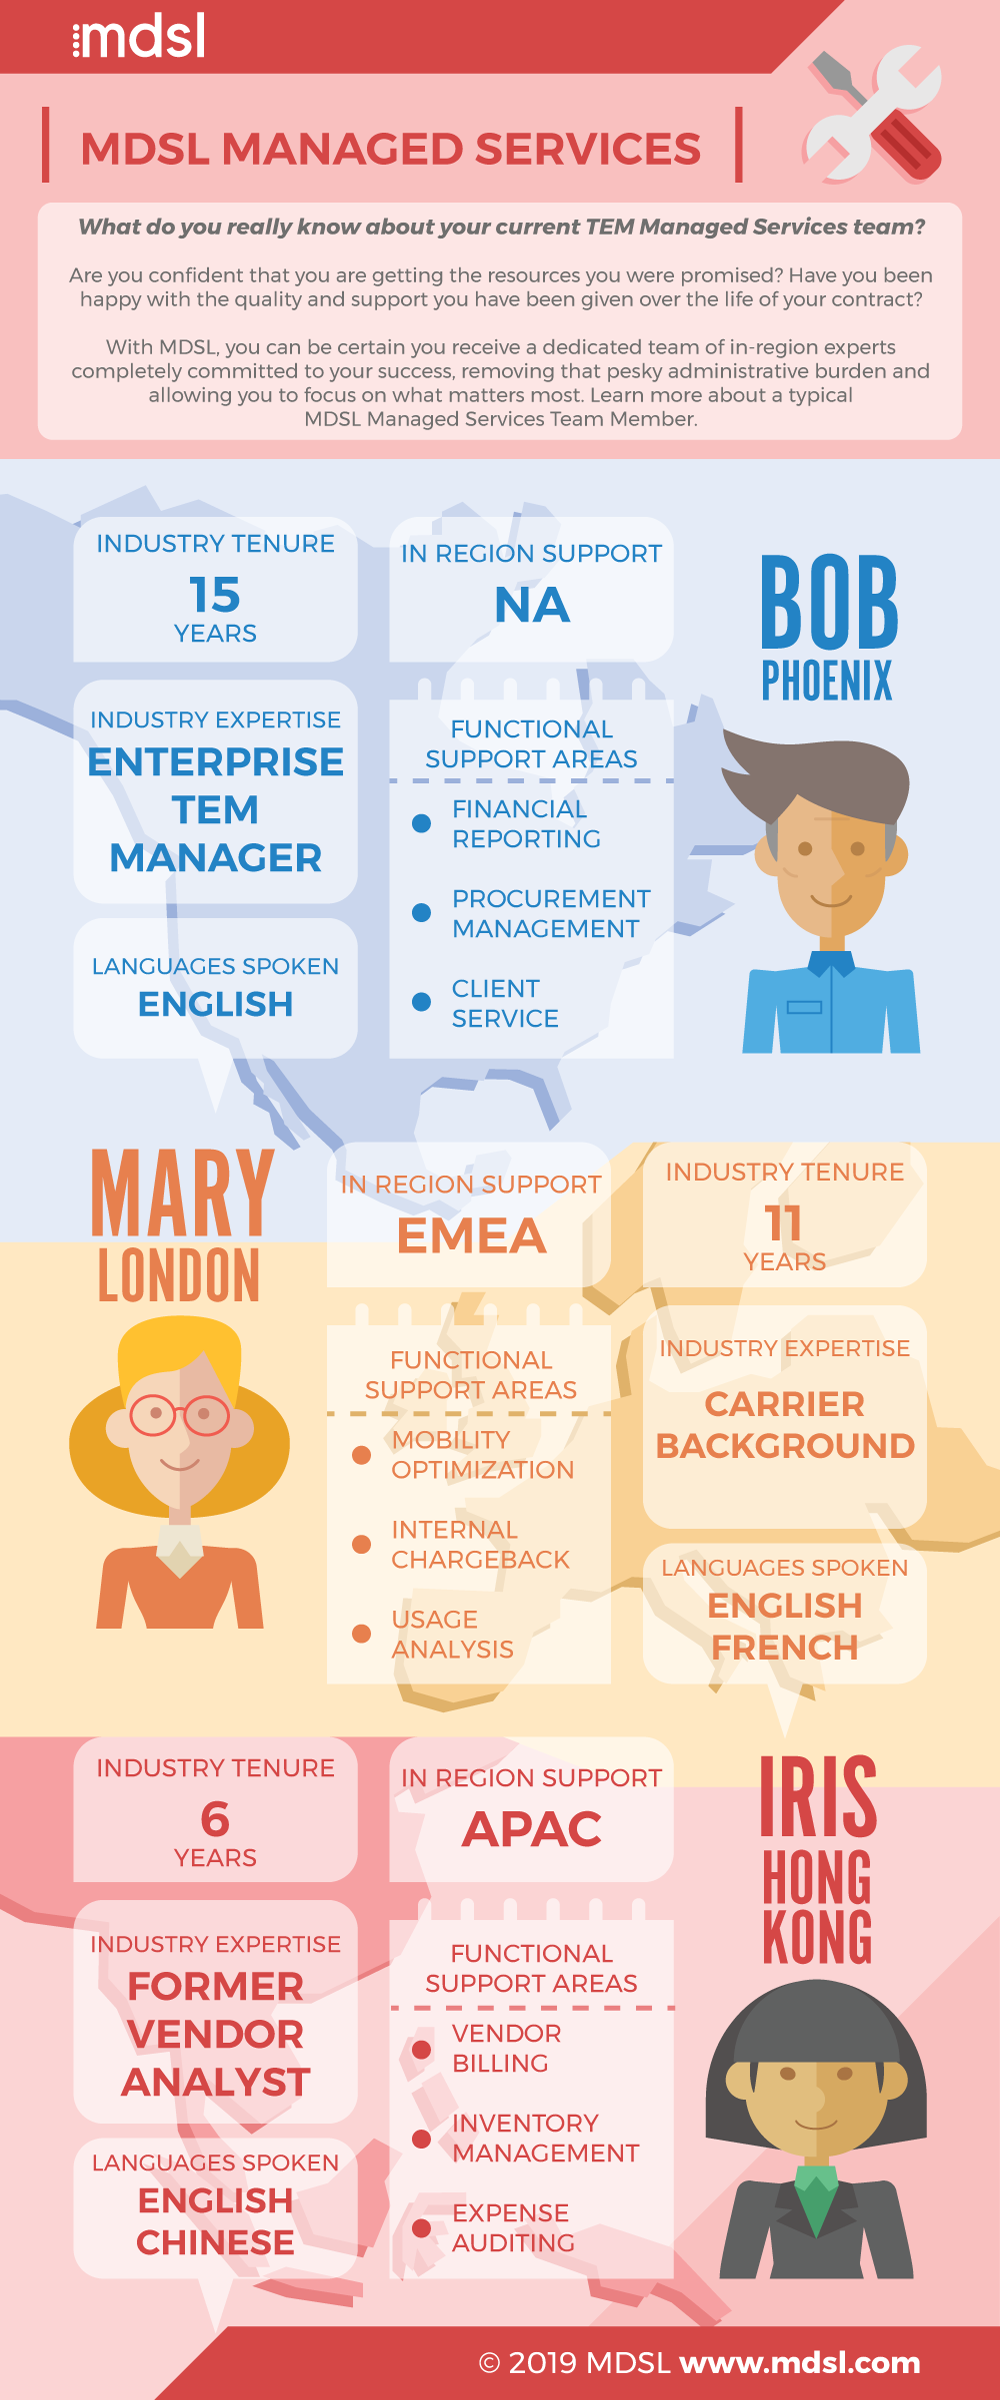 MDSL-Managed-Services-Infographic